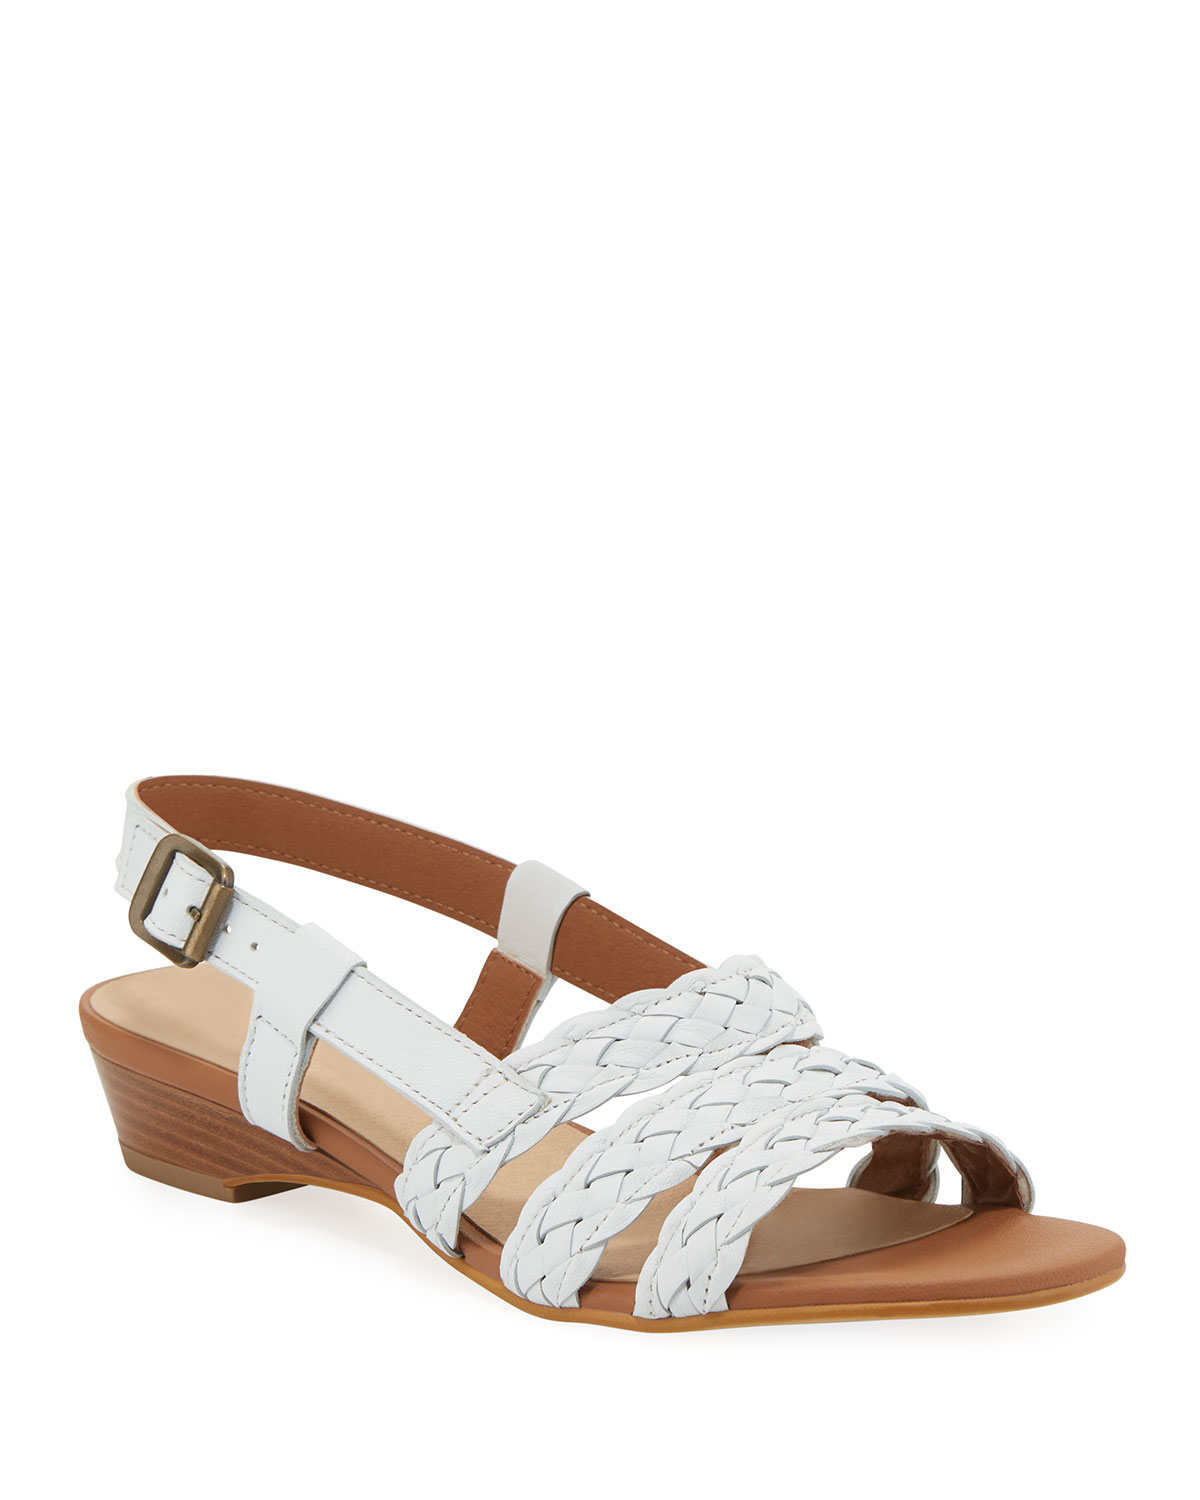 Gia Woven Leather Slingback Sandals, White